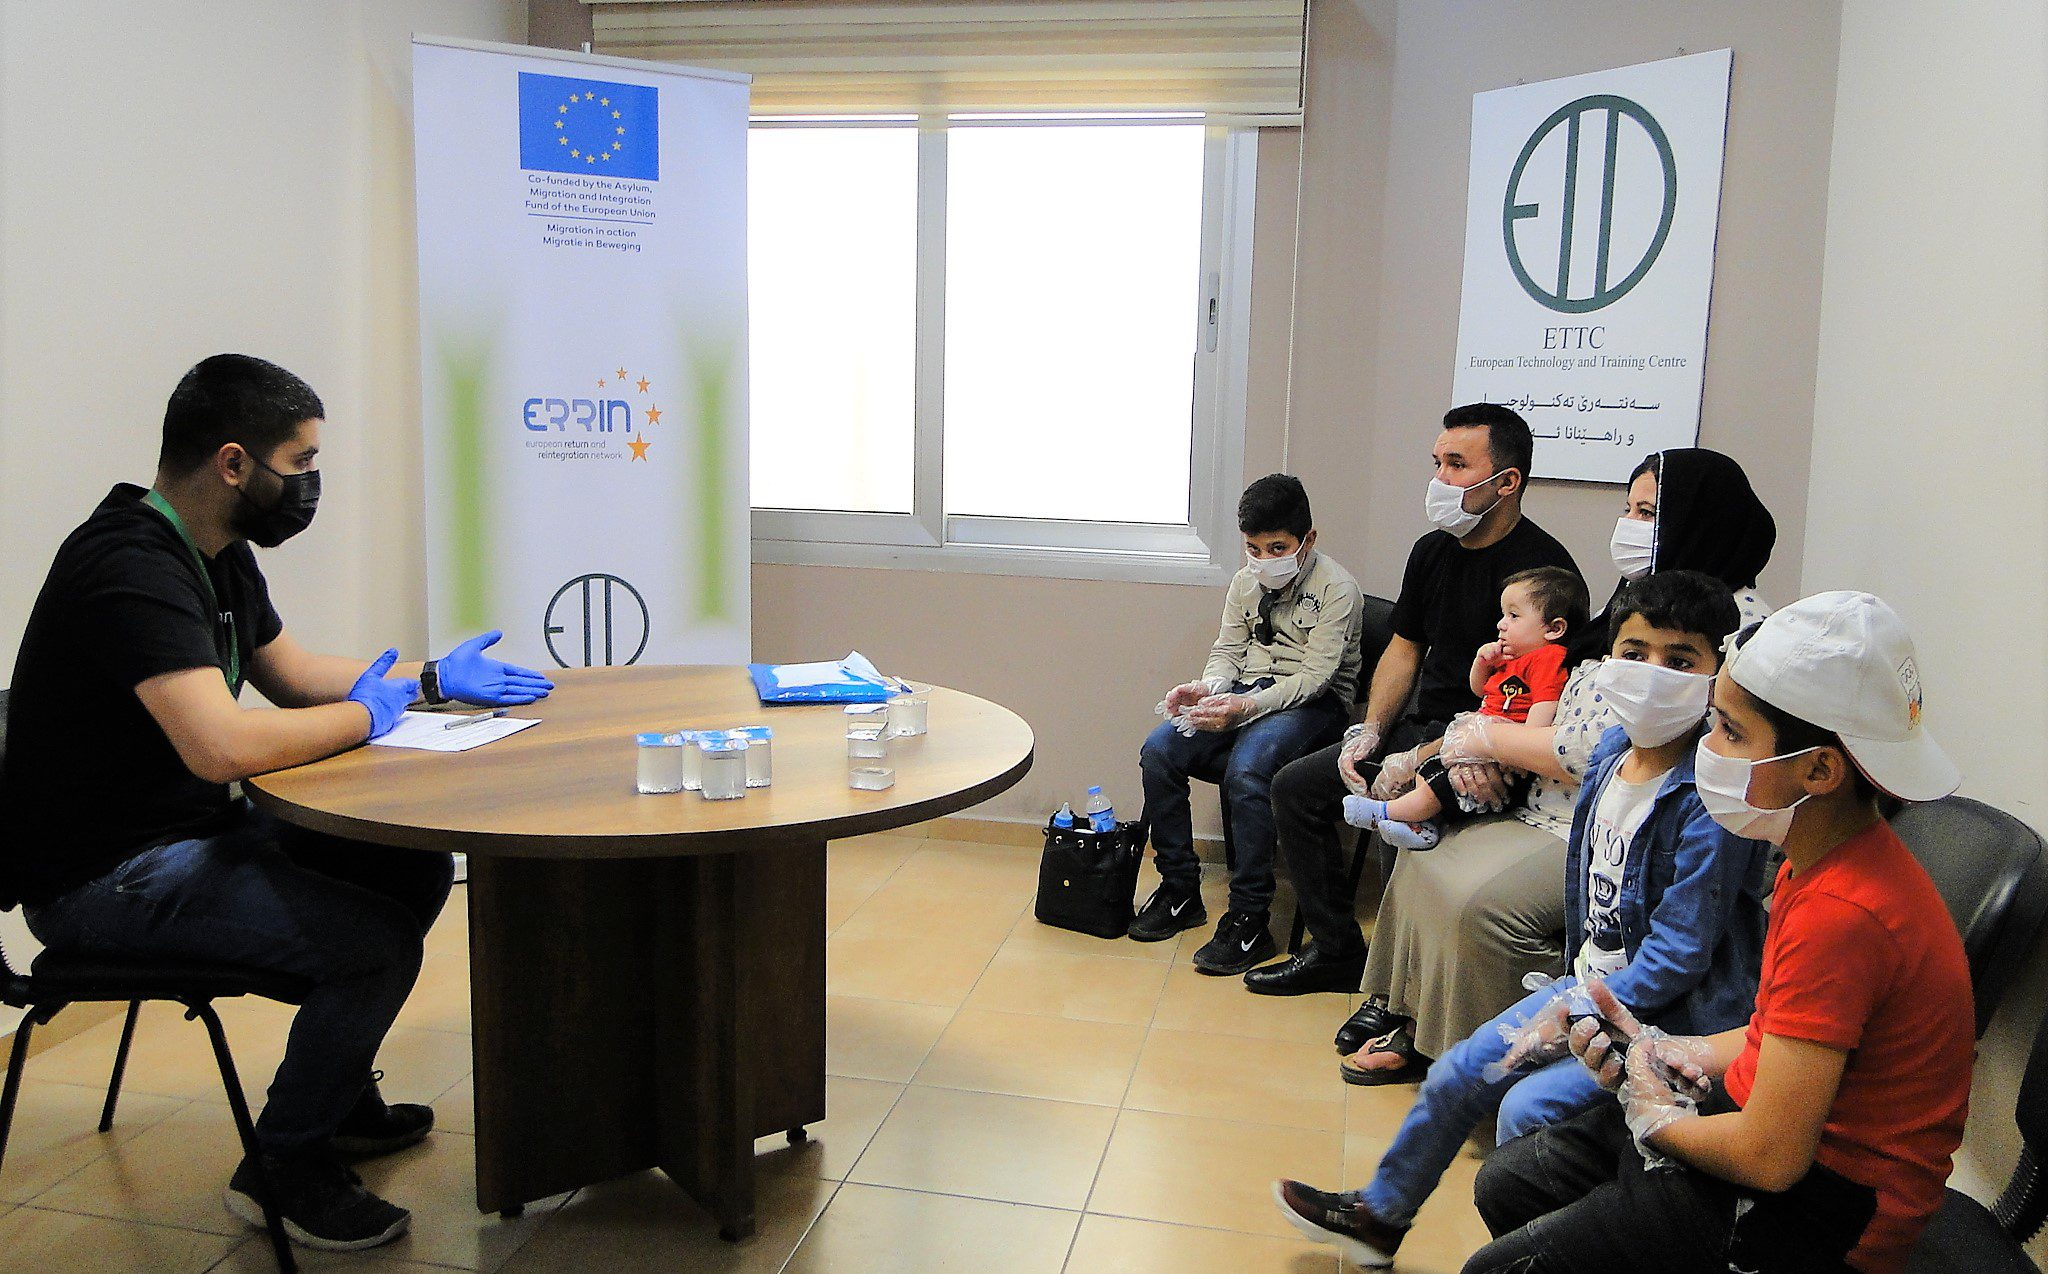 Beneficiary with his family at the ETTC office in Kurdistan.